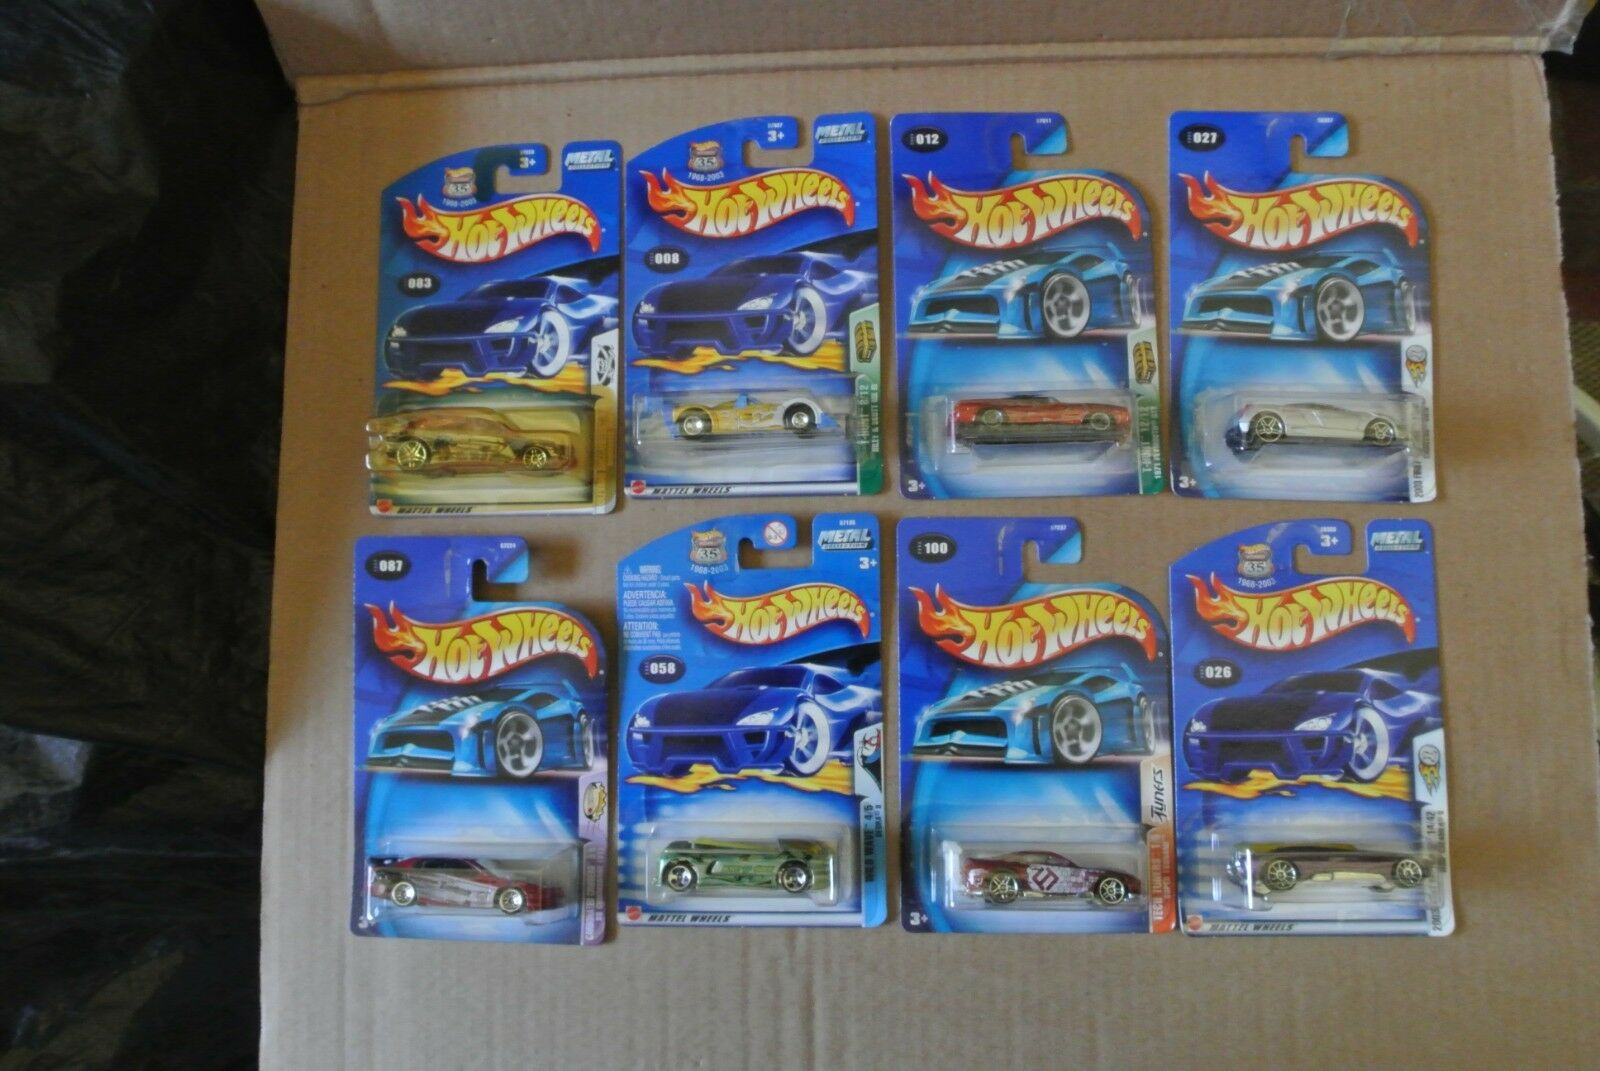 2003 Hot Wheel Cars Set of 8